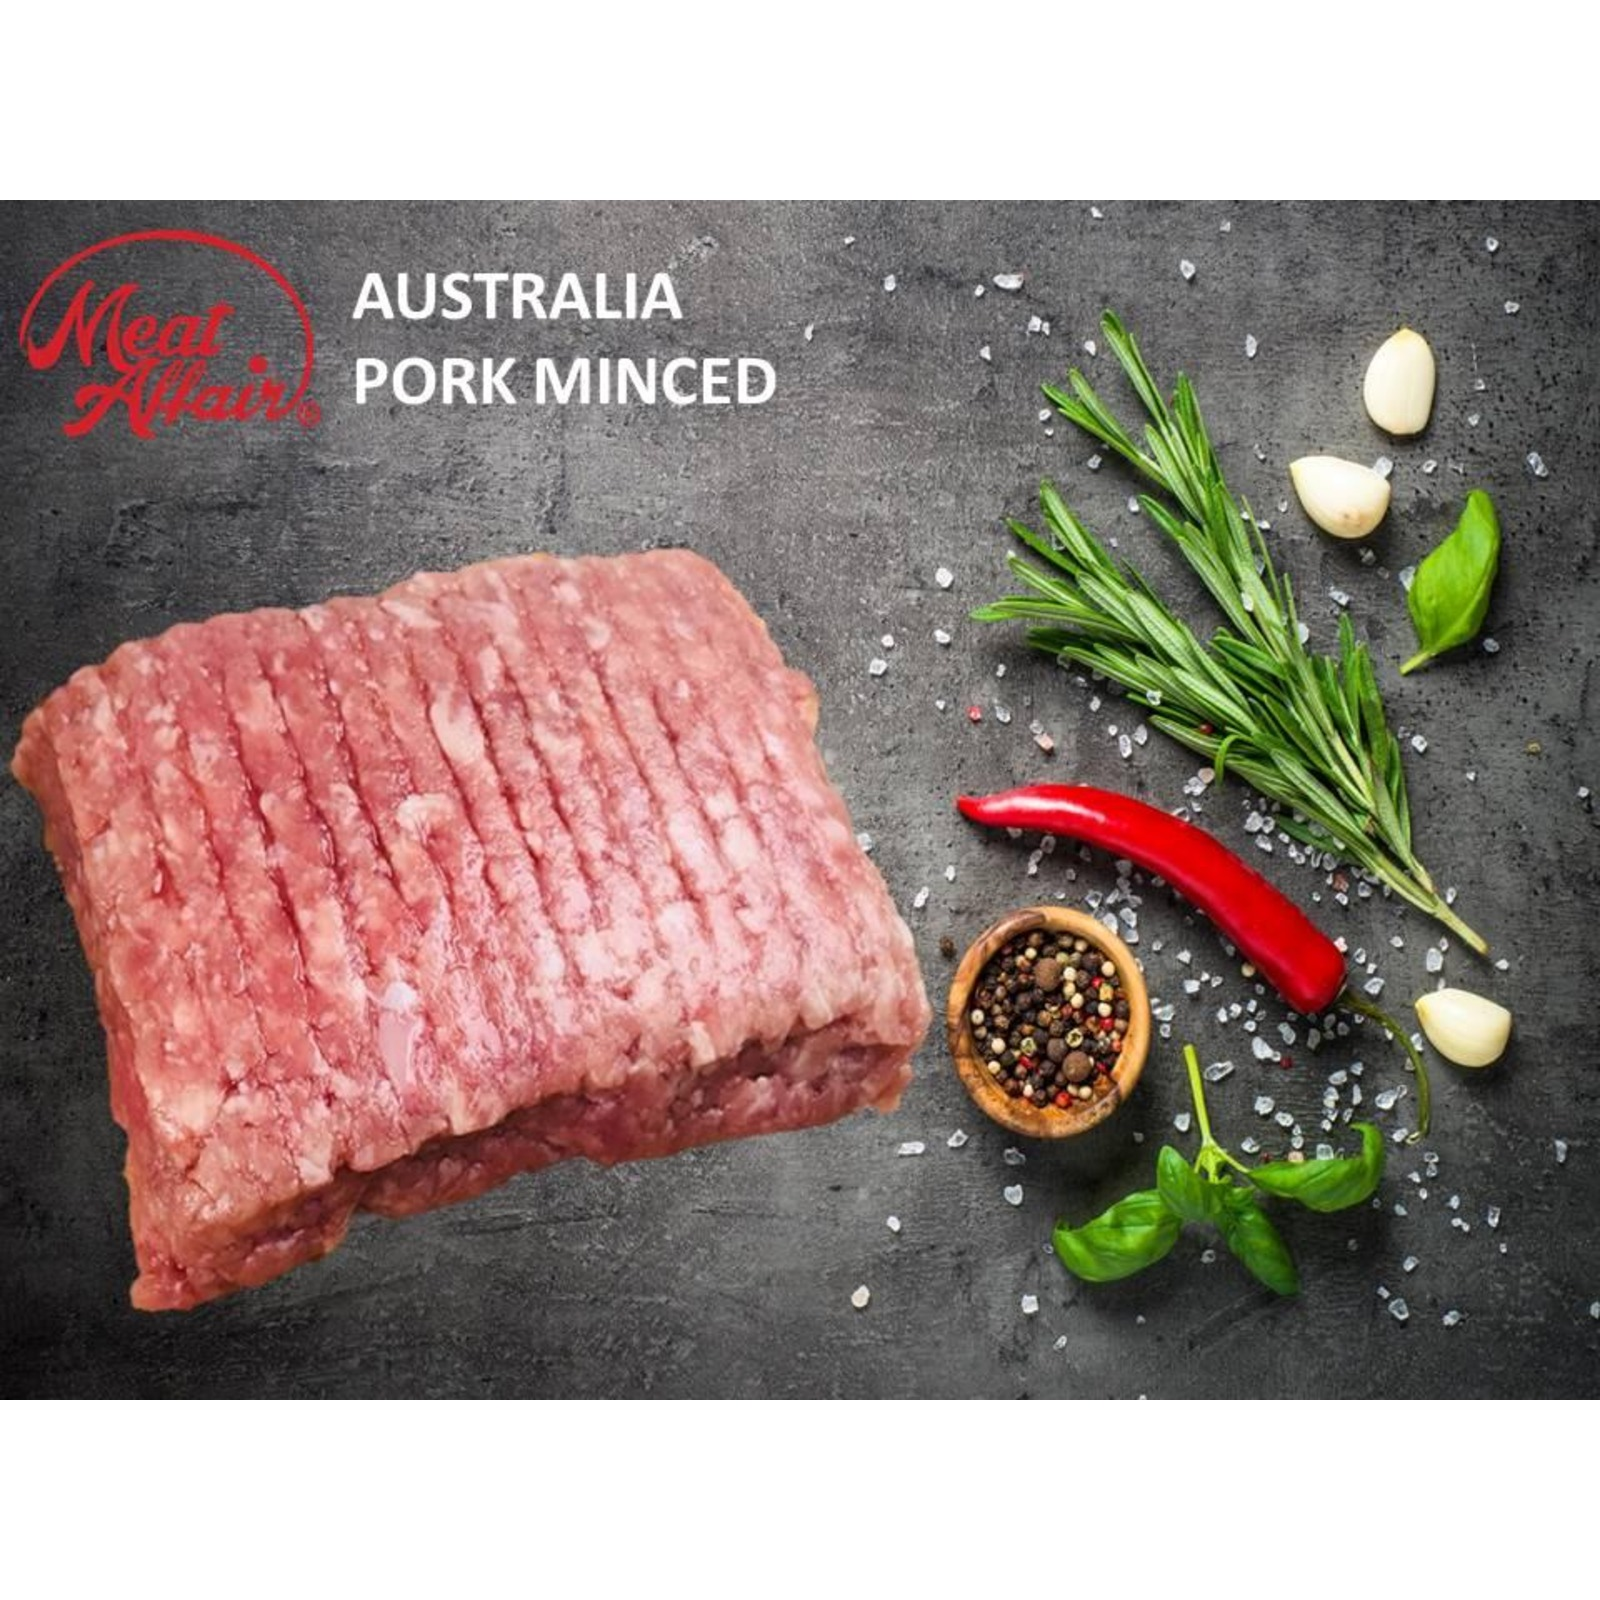 Meat Affair Australia Pork Minced